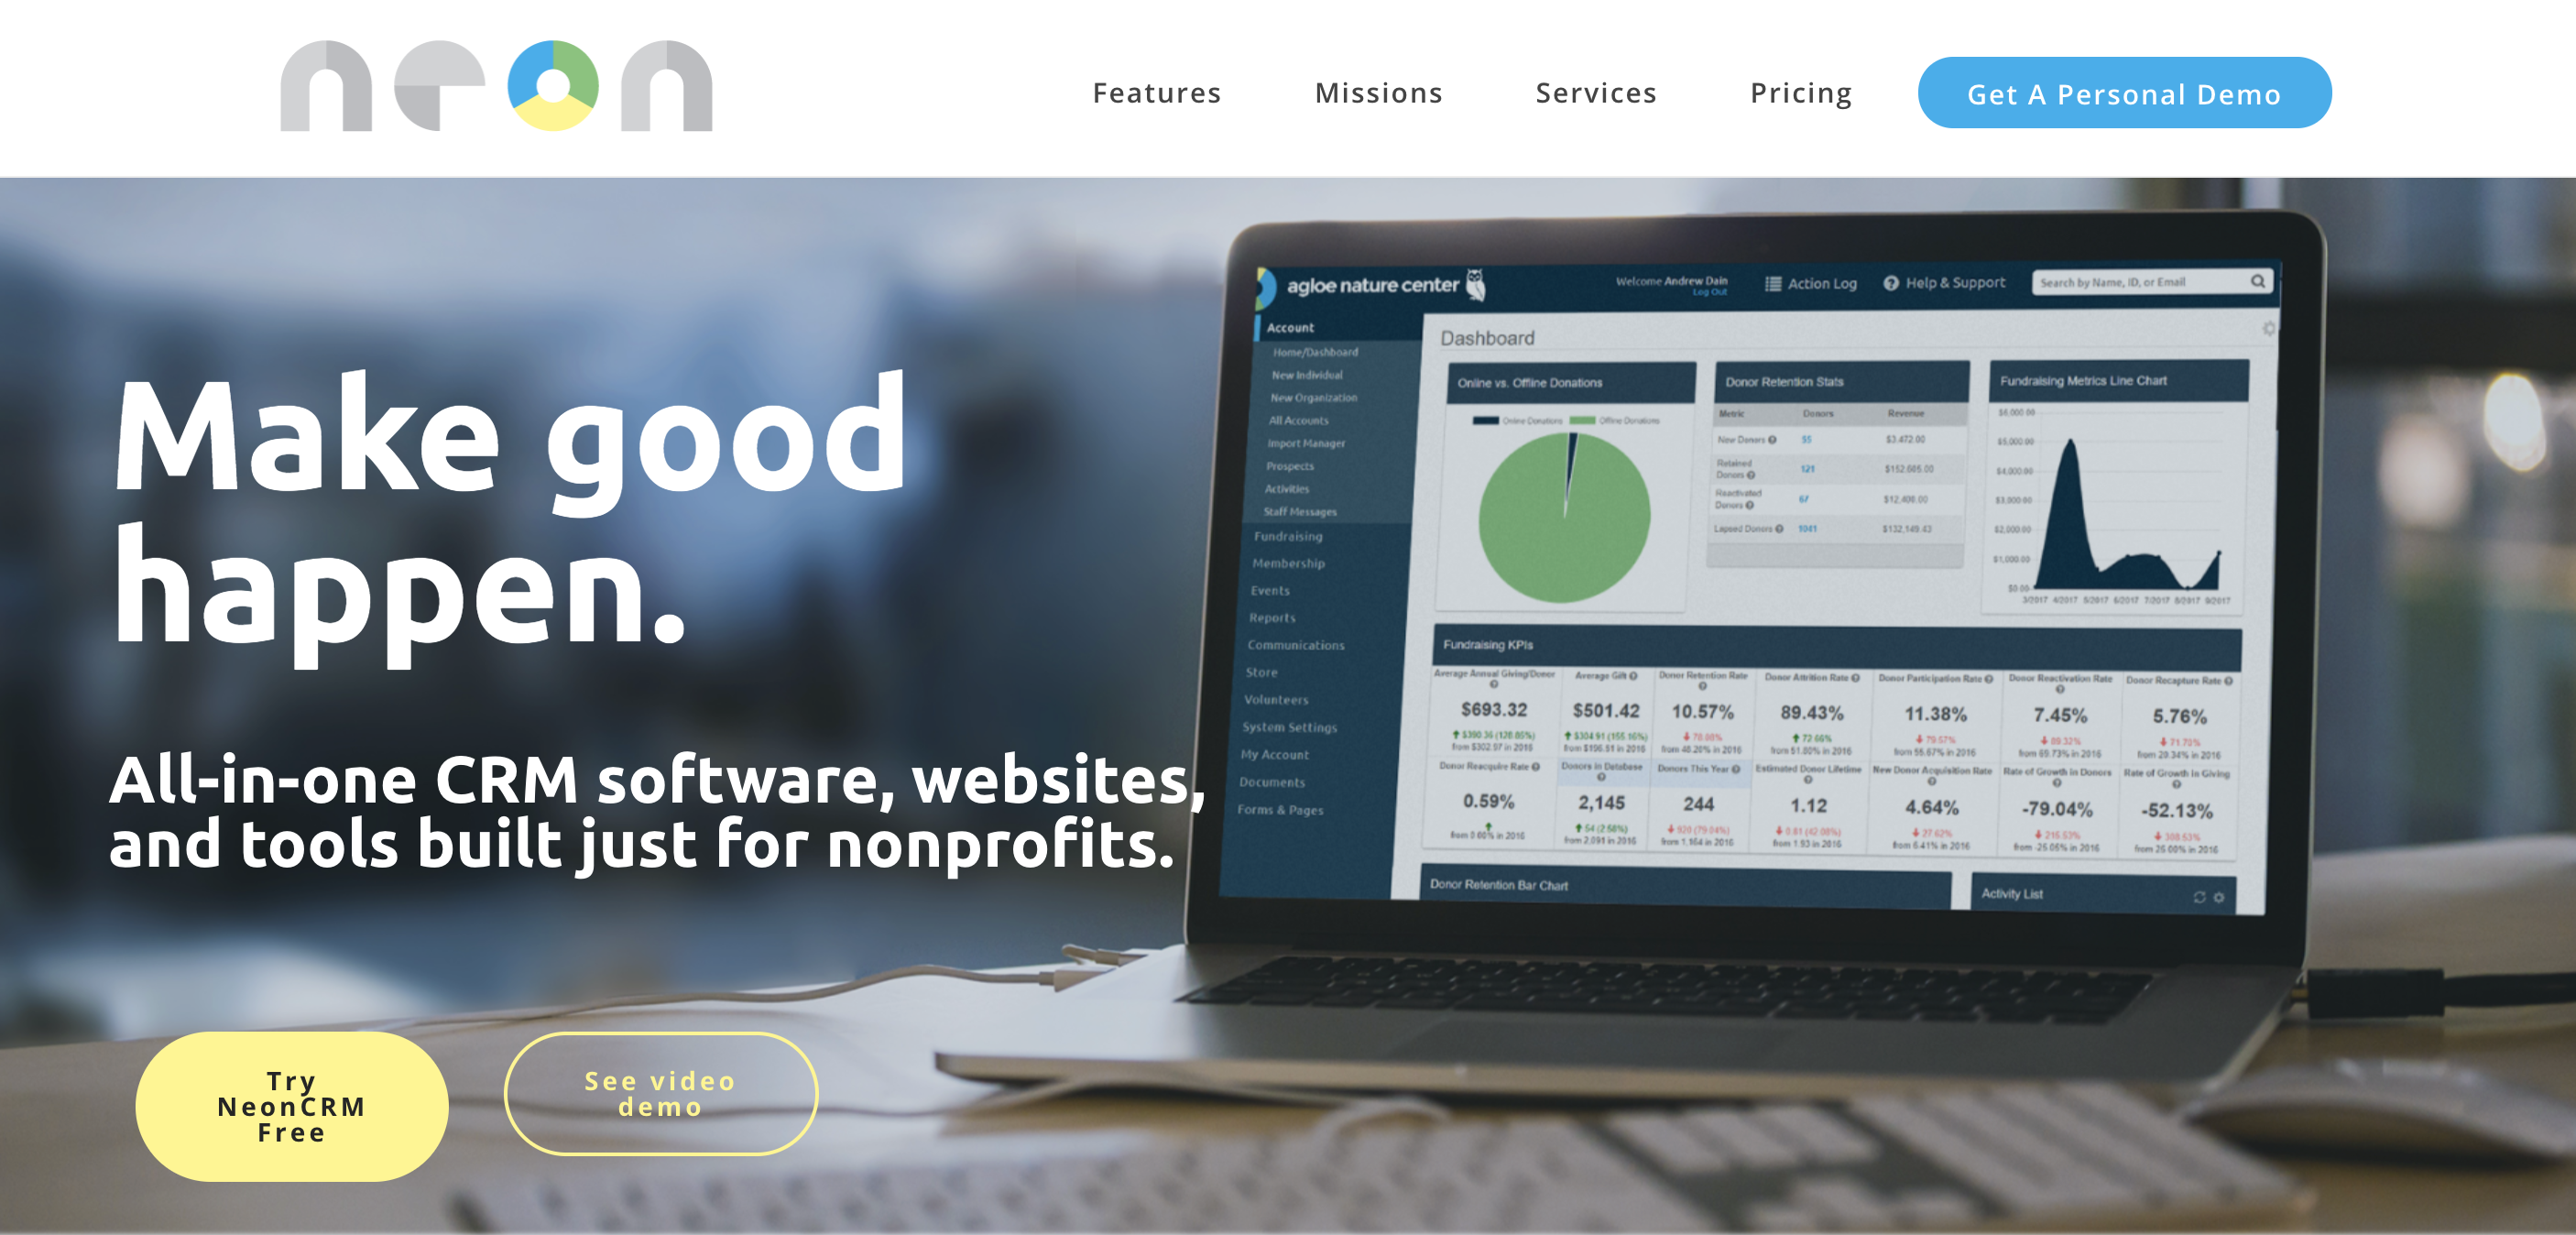 NeonCRM home page